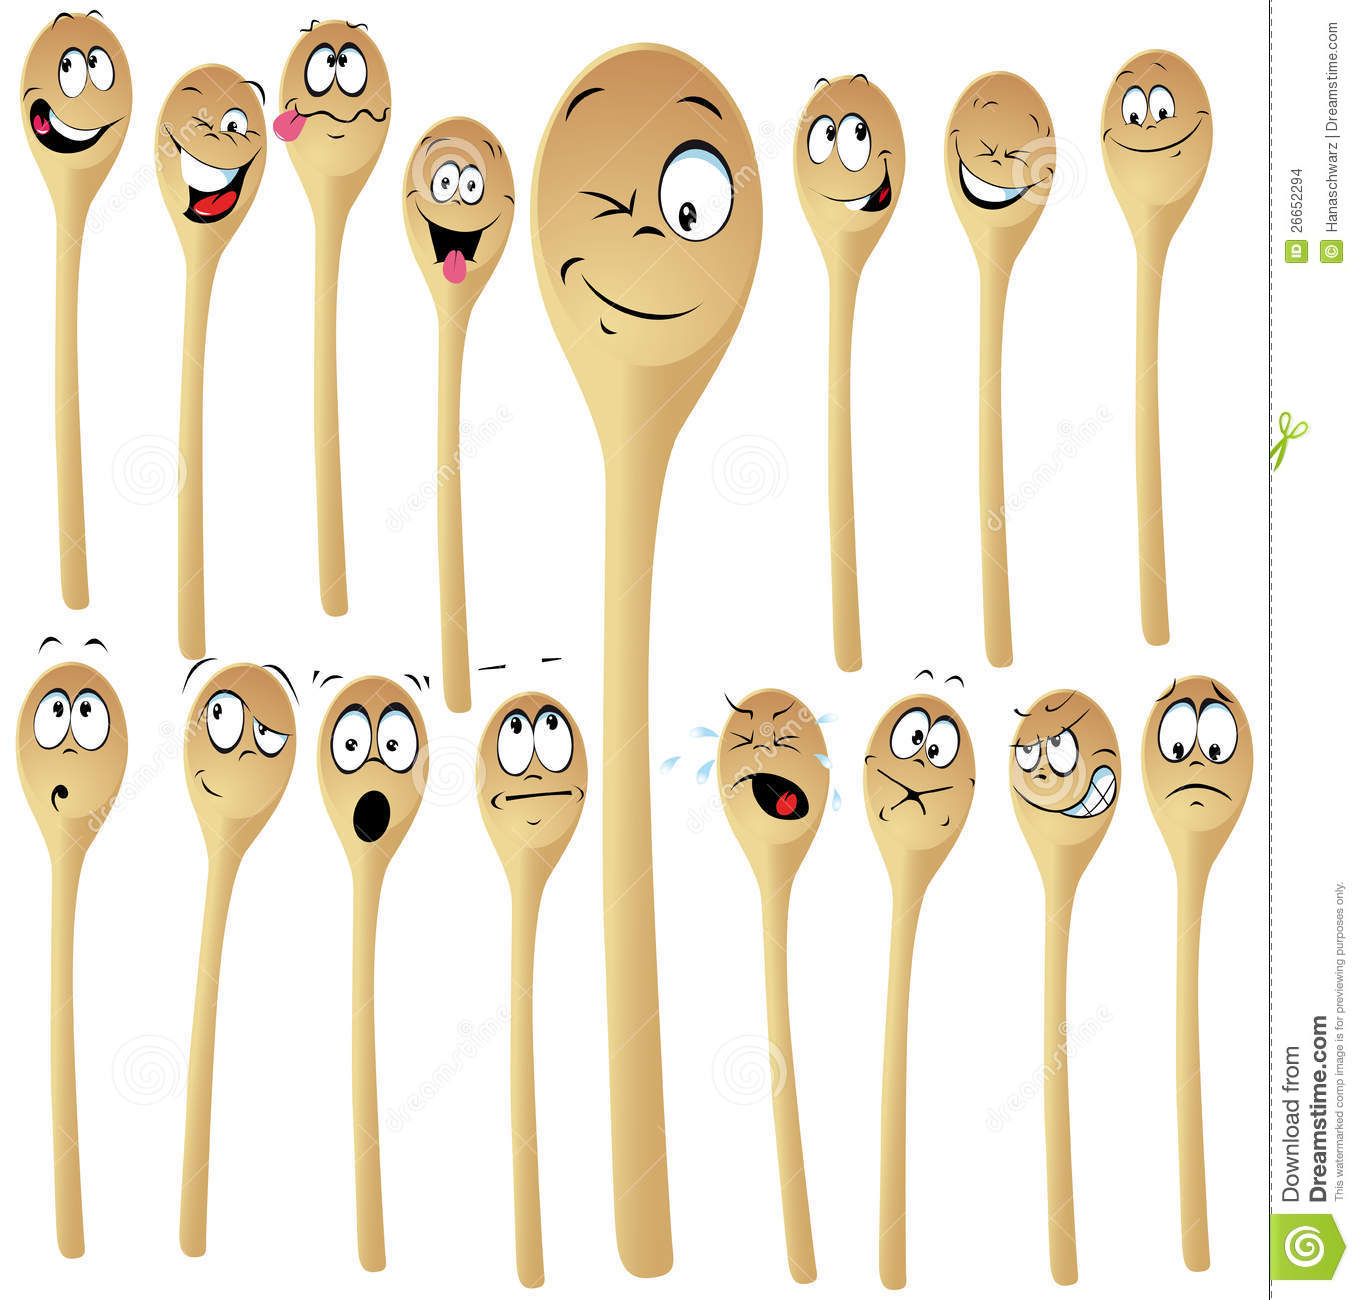 More similar stock images of ` Wooden spoon cartoon `